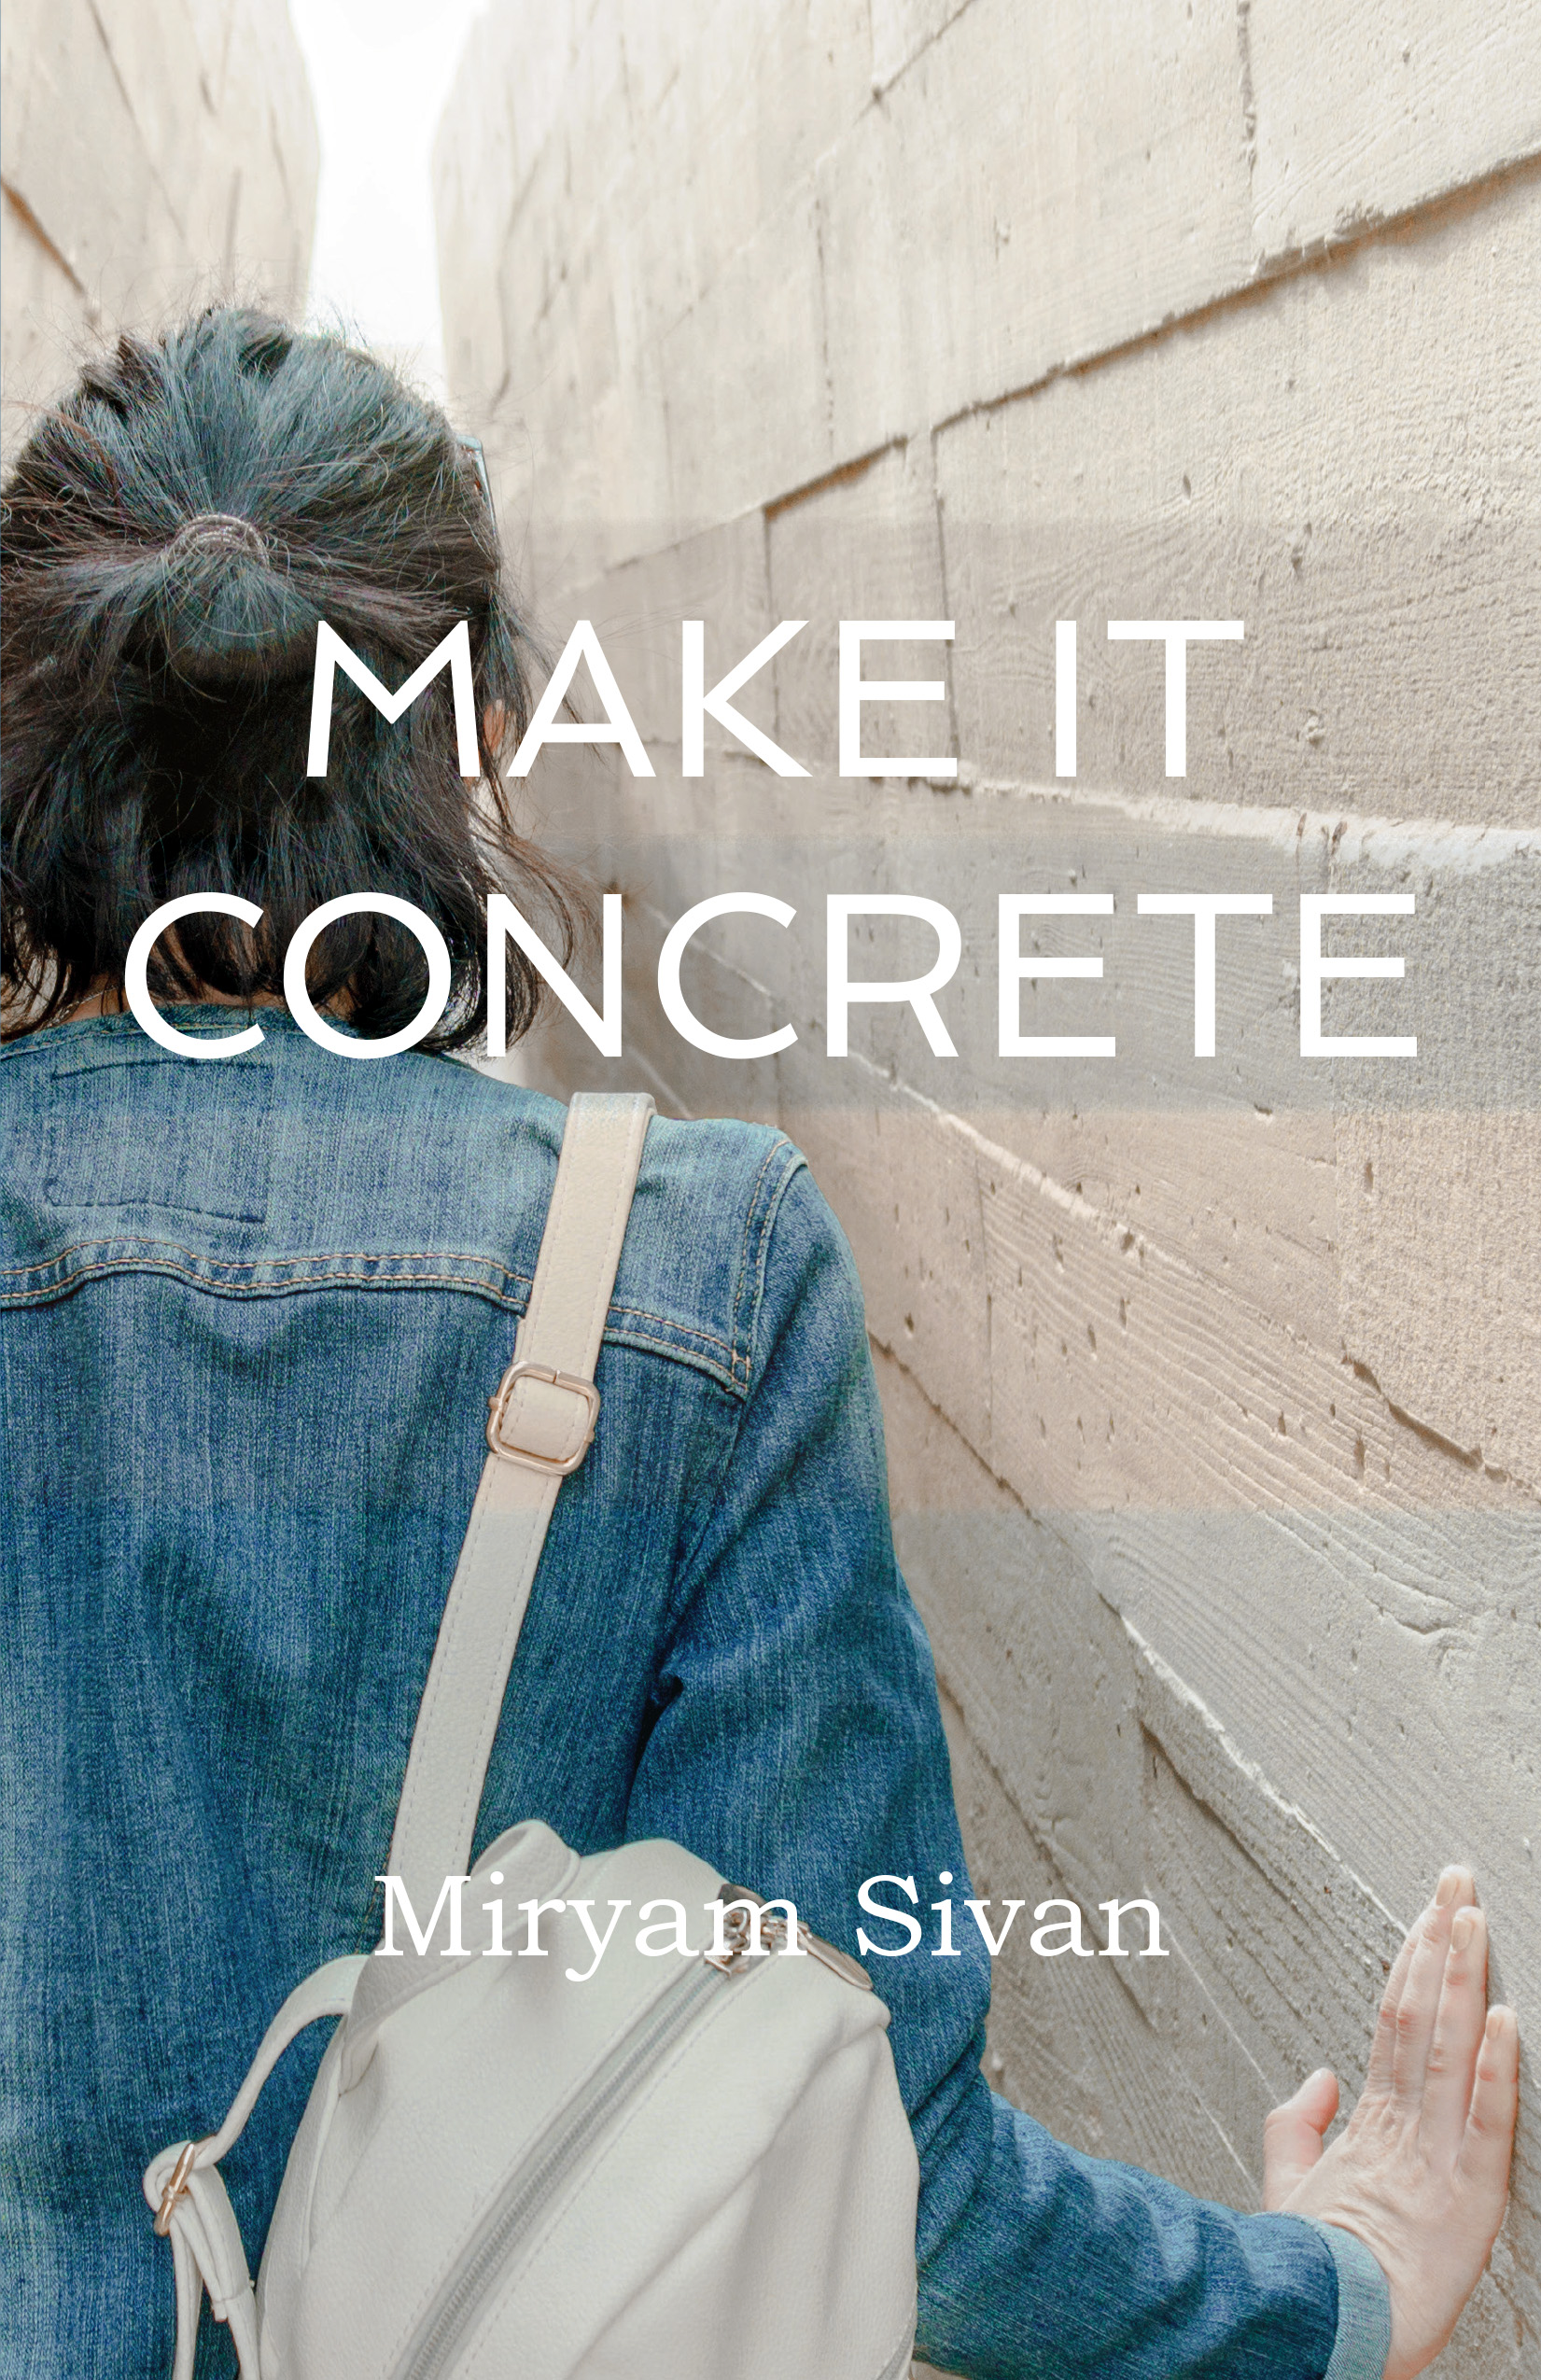 Make It Concrete